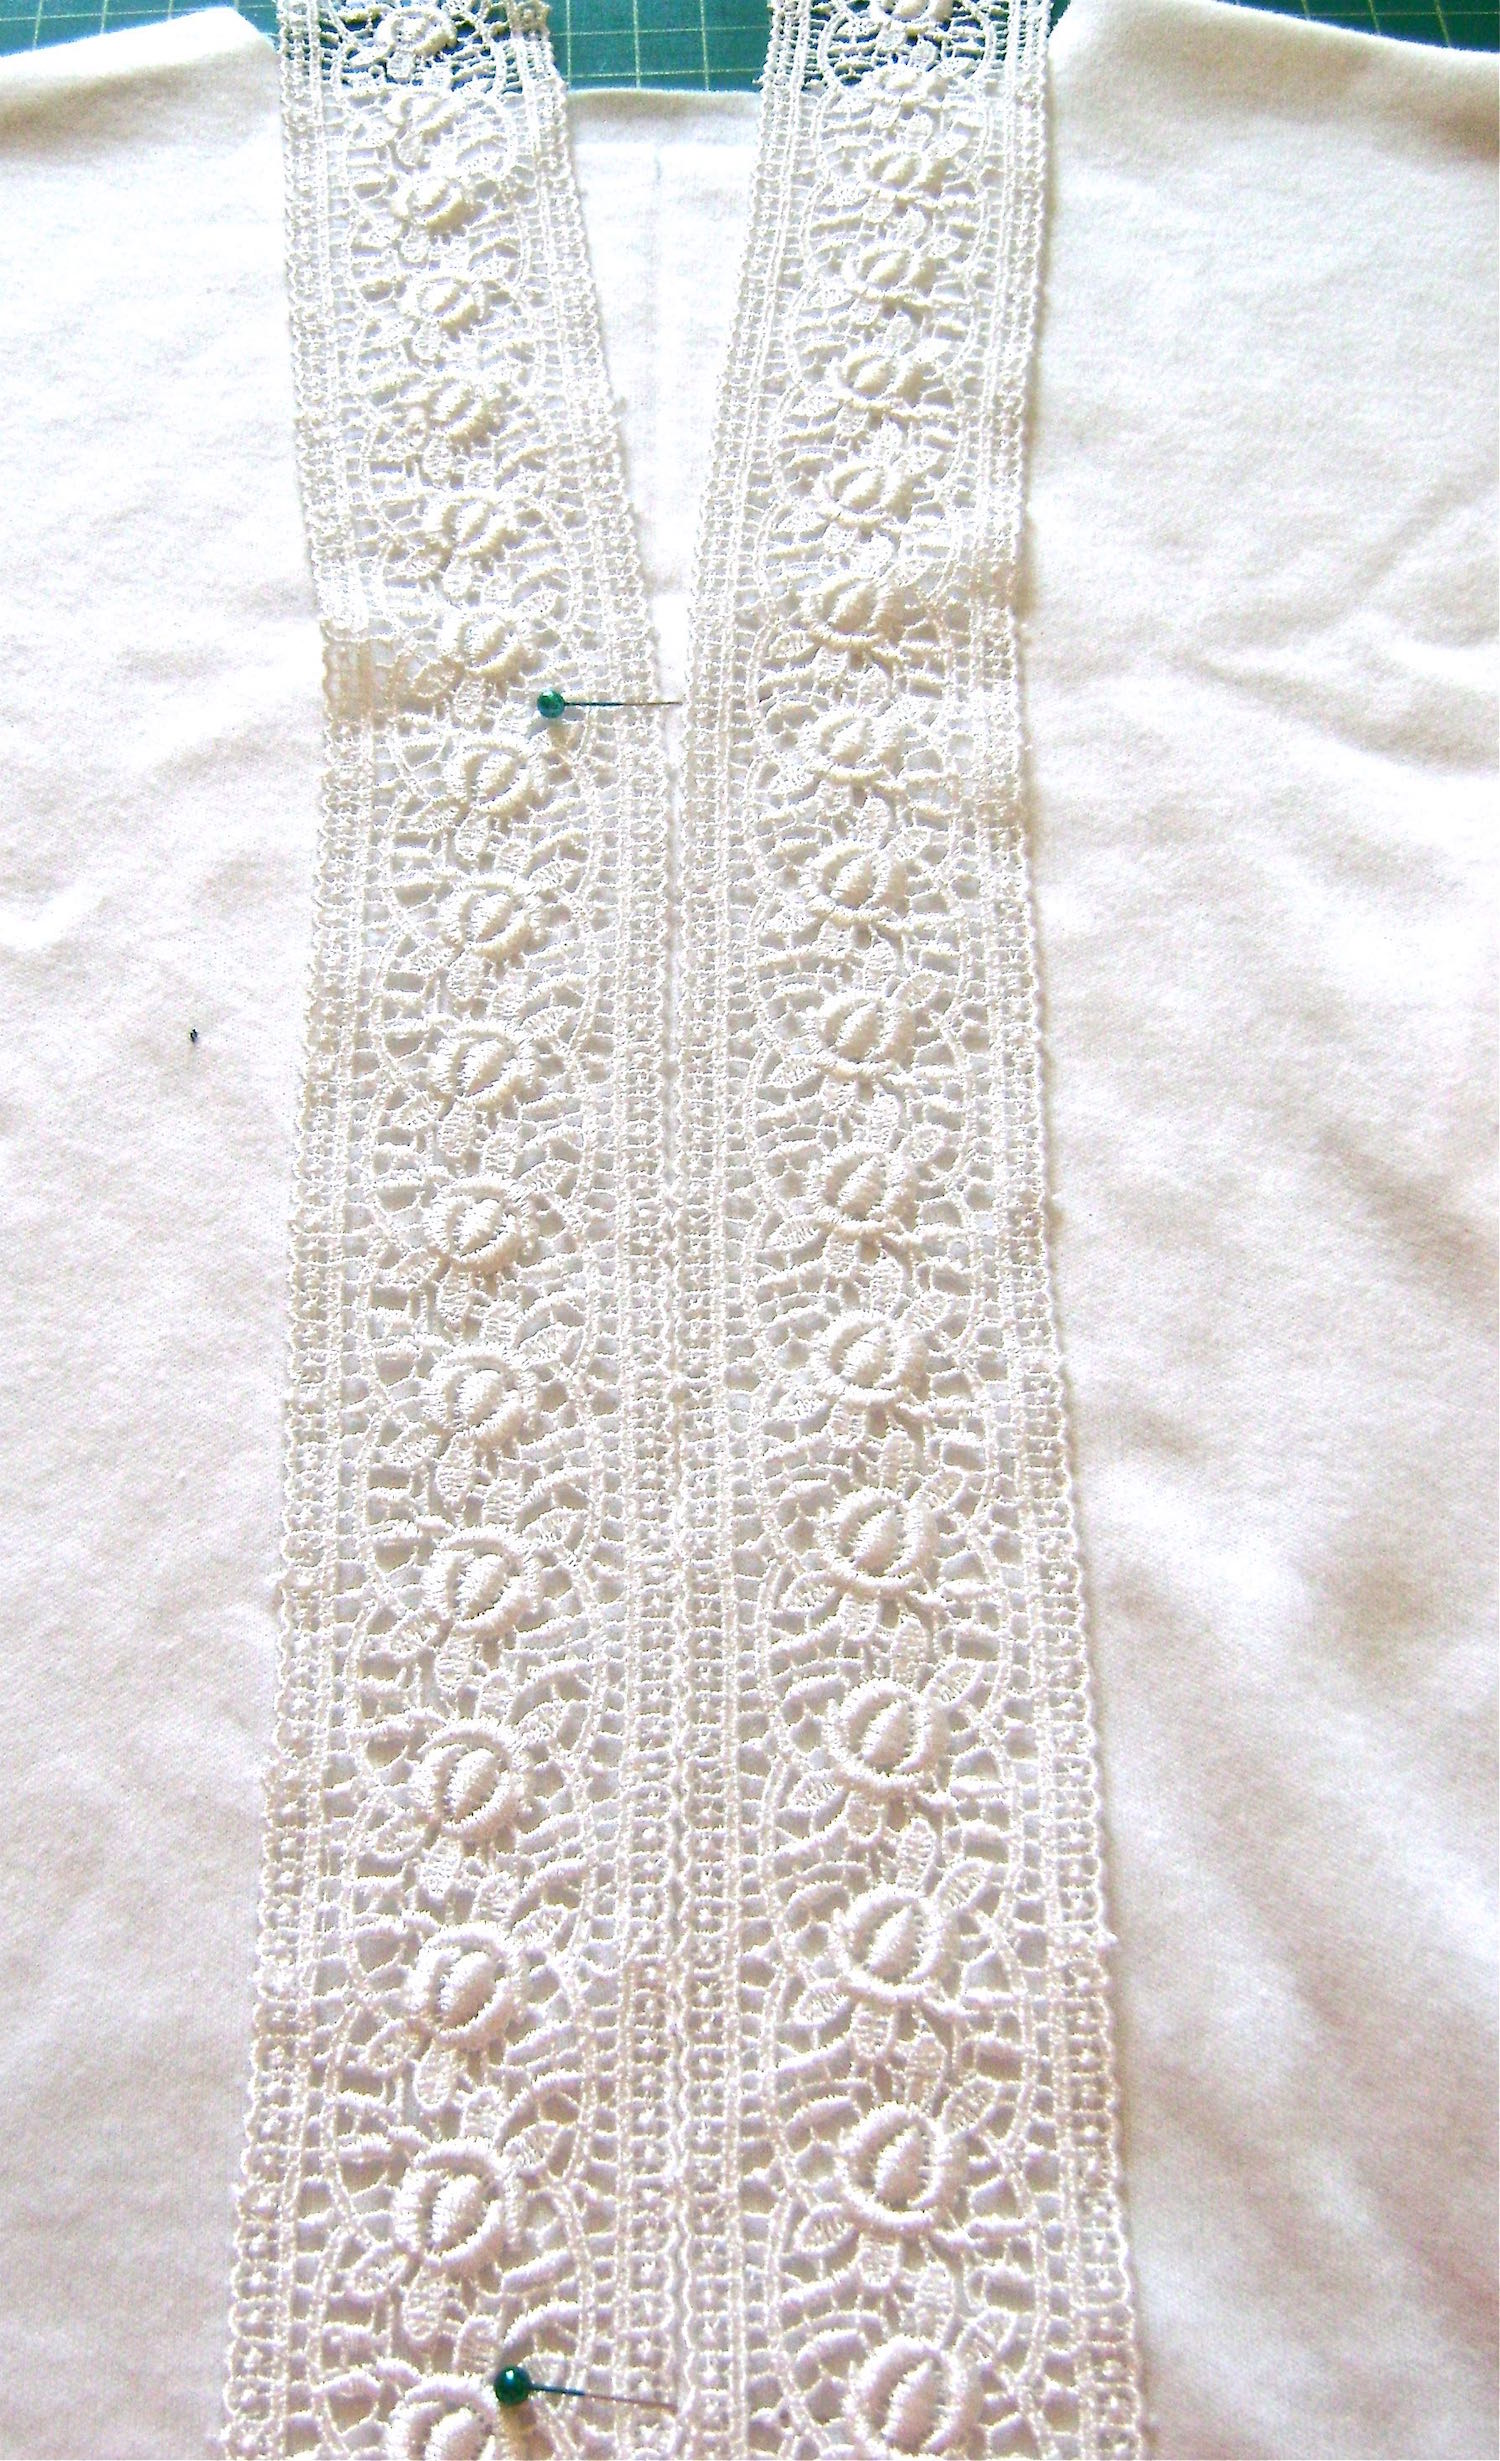 step 4 - Temporarily place two pieces of lace side by side down the front of the shirt with the long lace edges meeting on the crease.